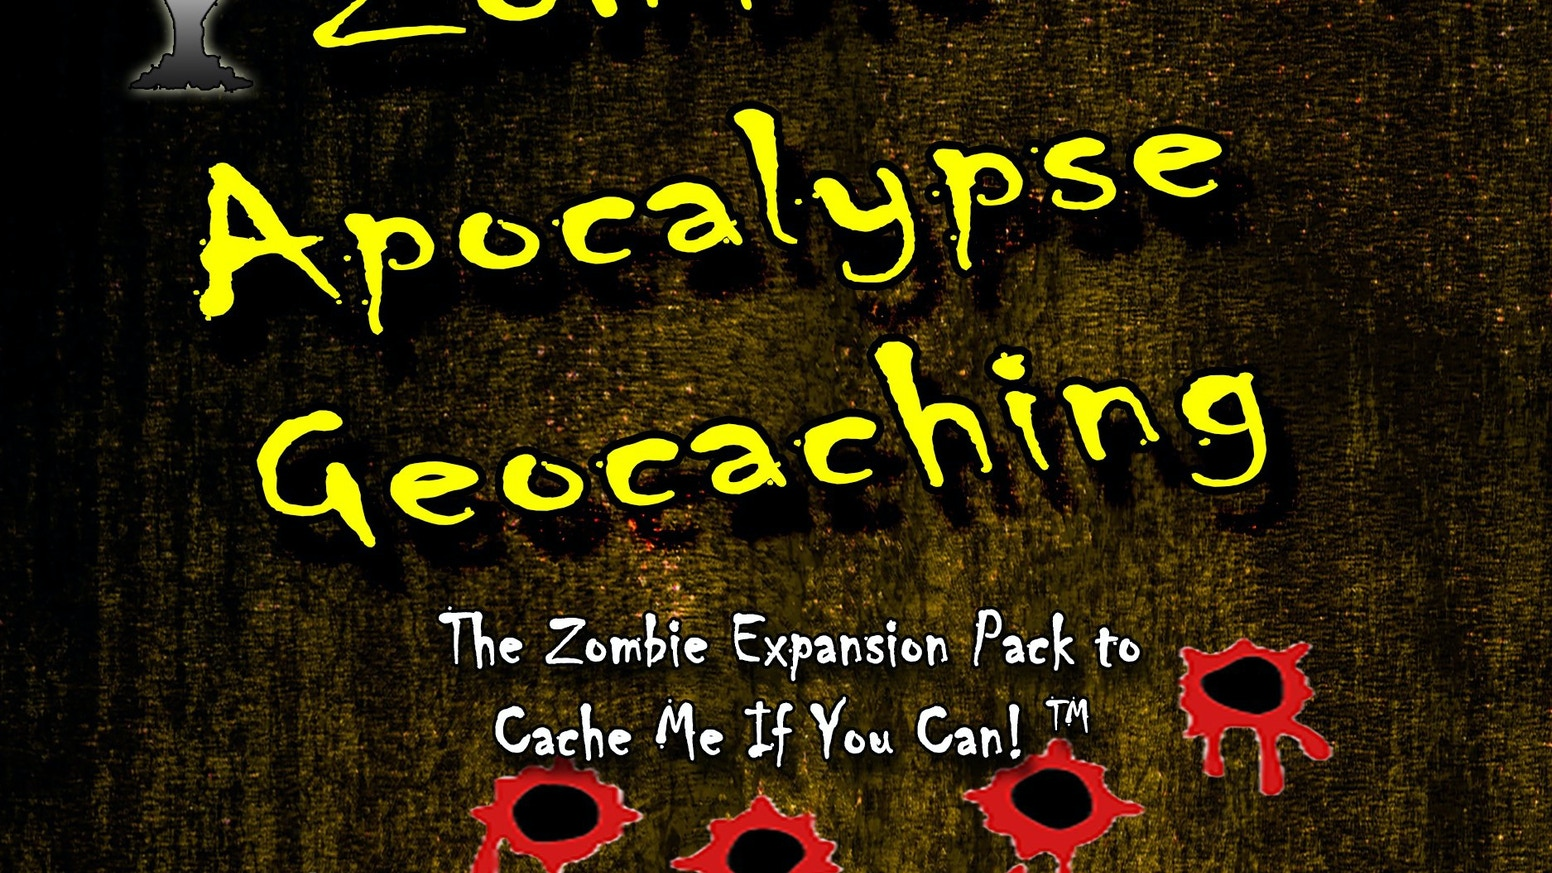 The Zombie Apocalypse has begun! Fortunately, YOU have your priorities straight. What could be more important than Geocaching?